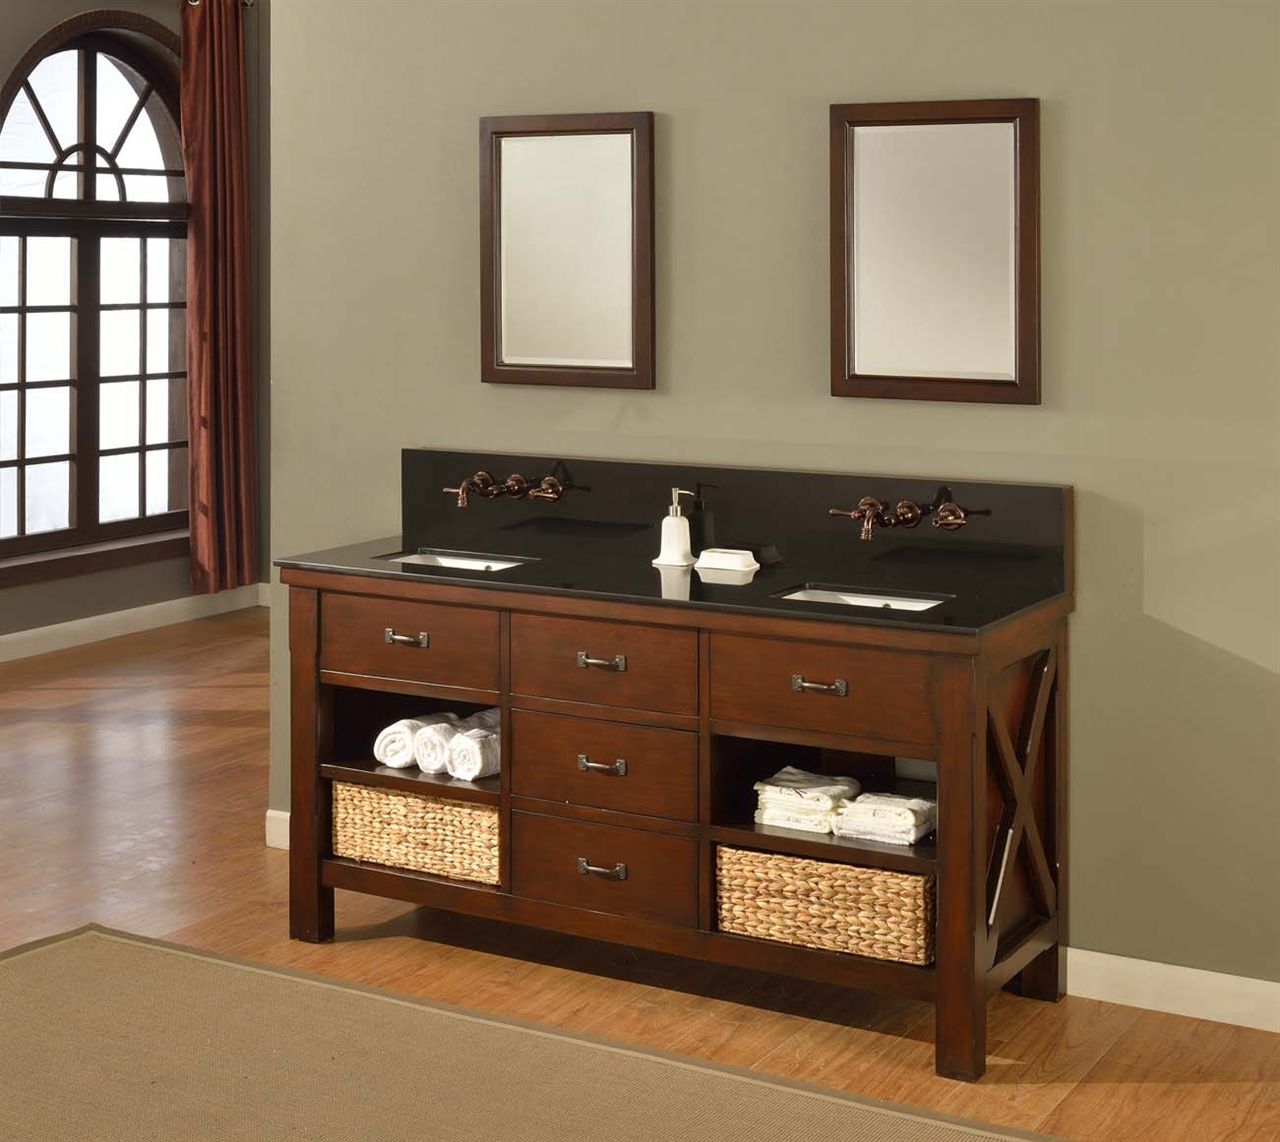 "Epic 70"" Mission Double Bathroom Vanity Sink Console. Direct To You Furniture in Unique Mission Style Bathroom Vanity"